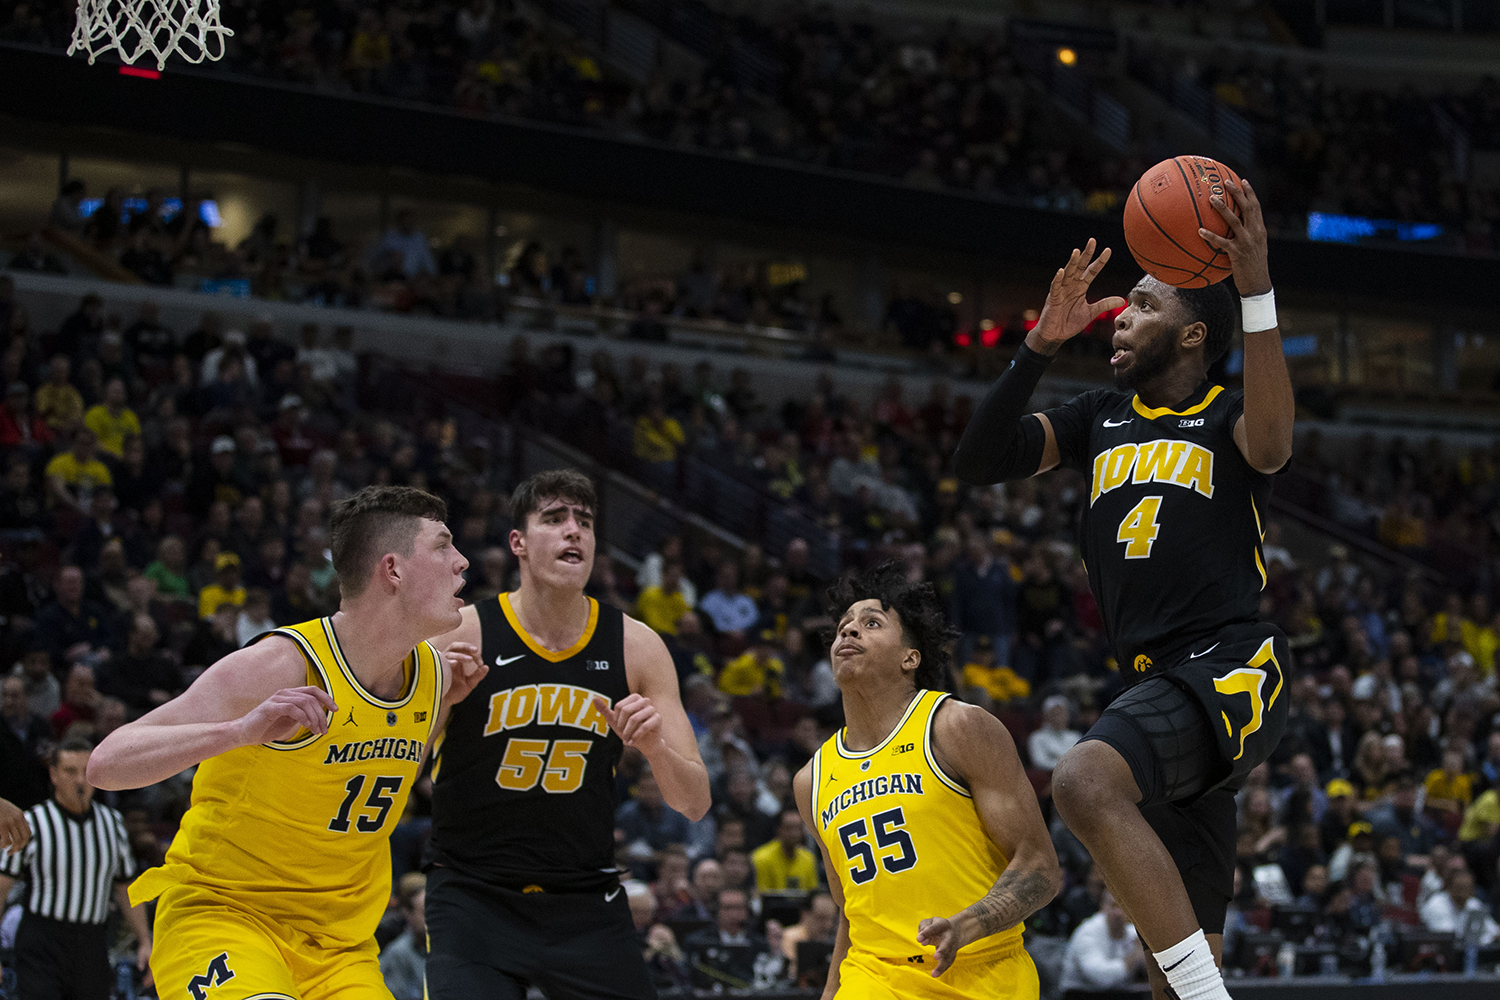 Iowa+guard+Isaiah+Moss+attempts+a+shot+during+the+Iowa%2FMichigan+Big+Ten+Tournament+men%27s+basketball+game+in+the+United+Center+in+Chicago+on+Friday%2C+March+15%2C+2019.+The+Wolverines+defeated+the+Hawkeyes%2C+74-53.